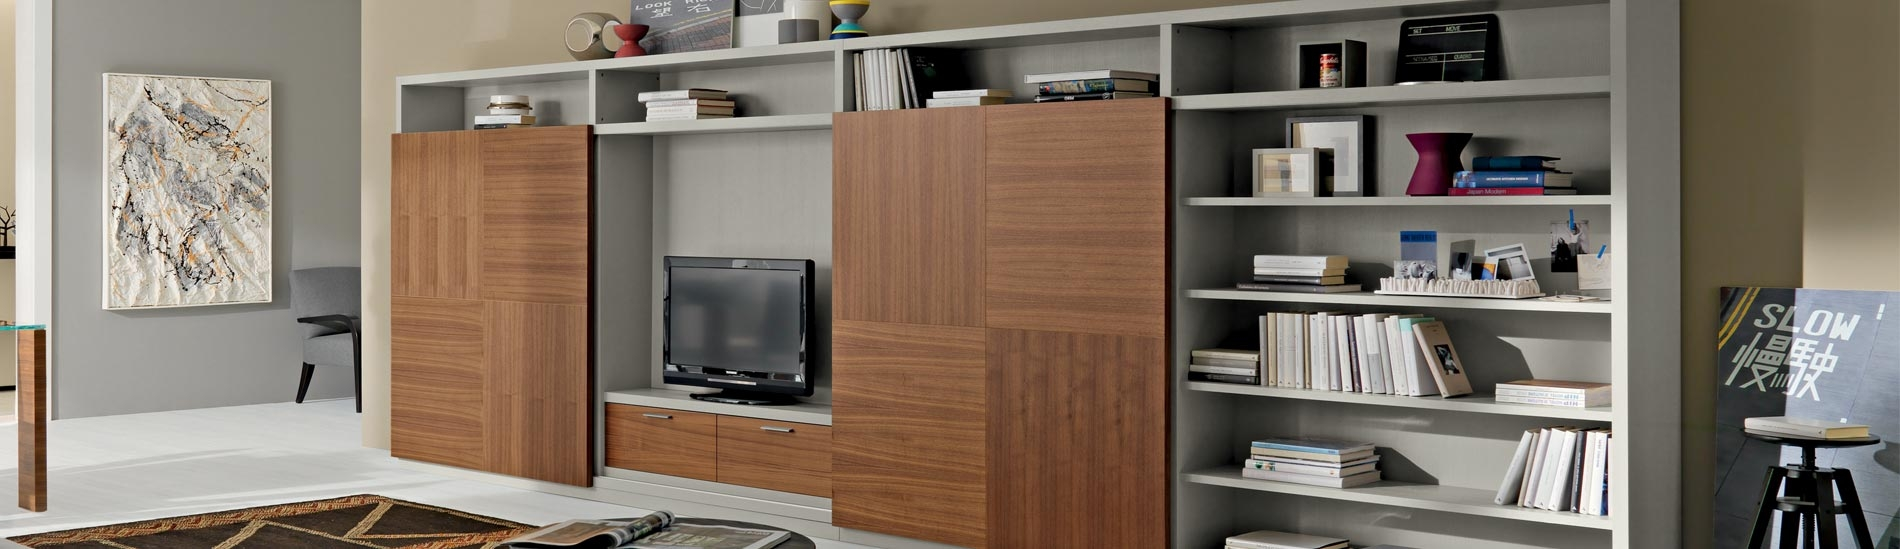 Awesome outlet le fablier contemporary amazing house for Spaggiari arredamenti